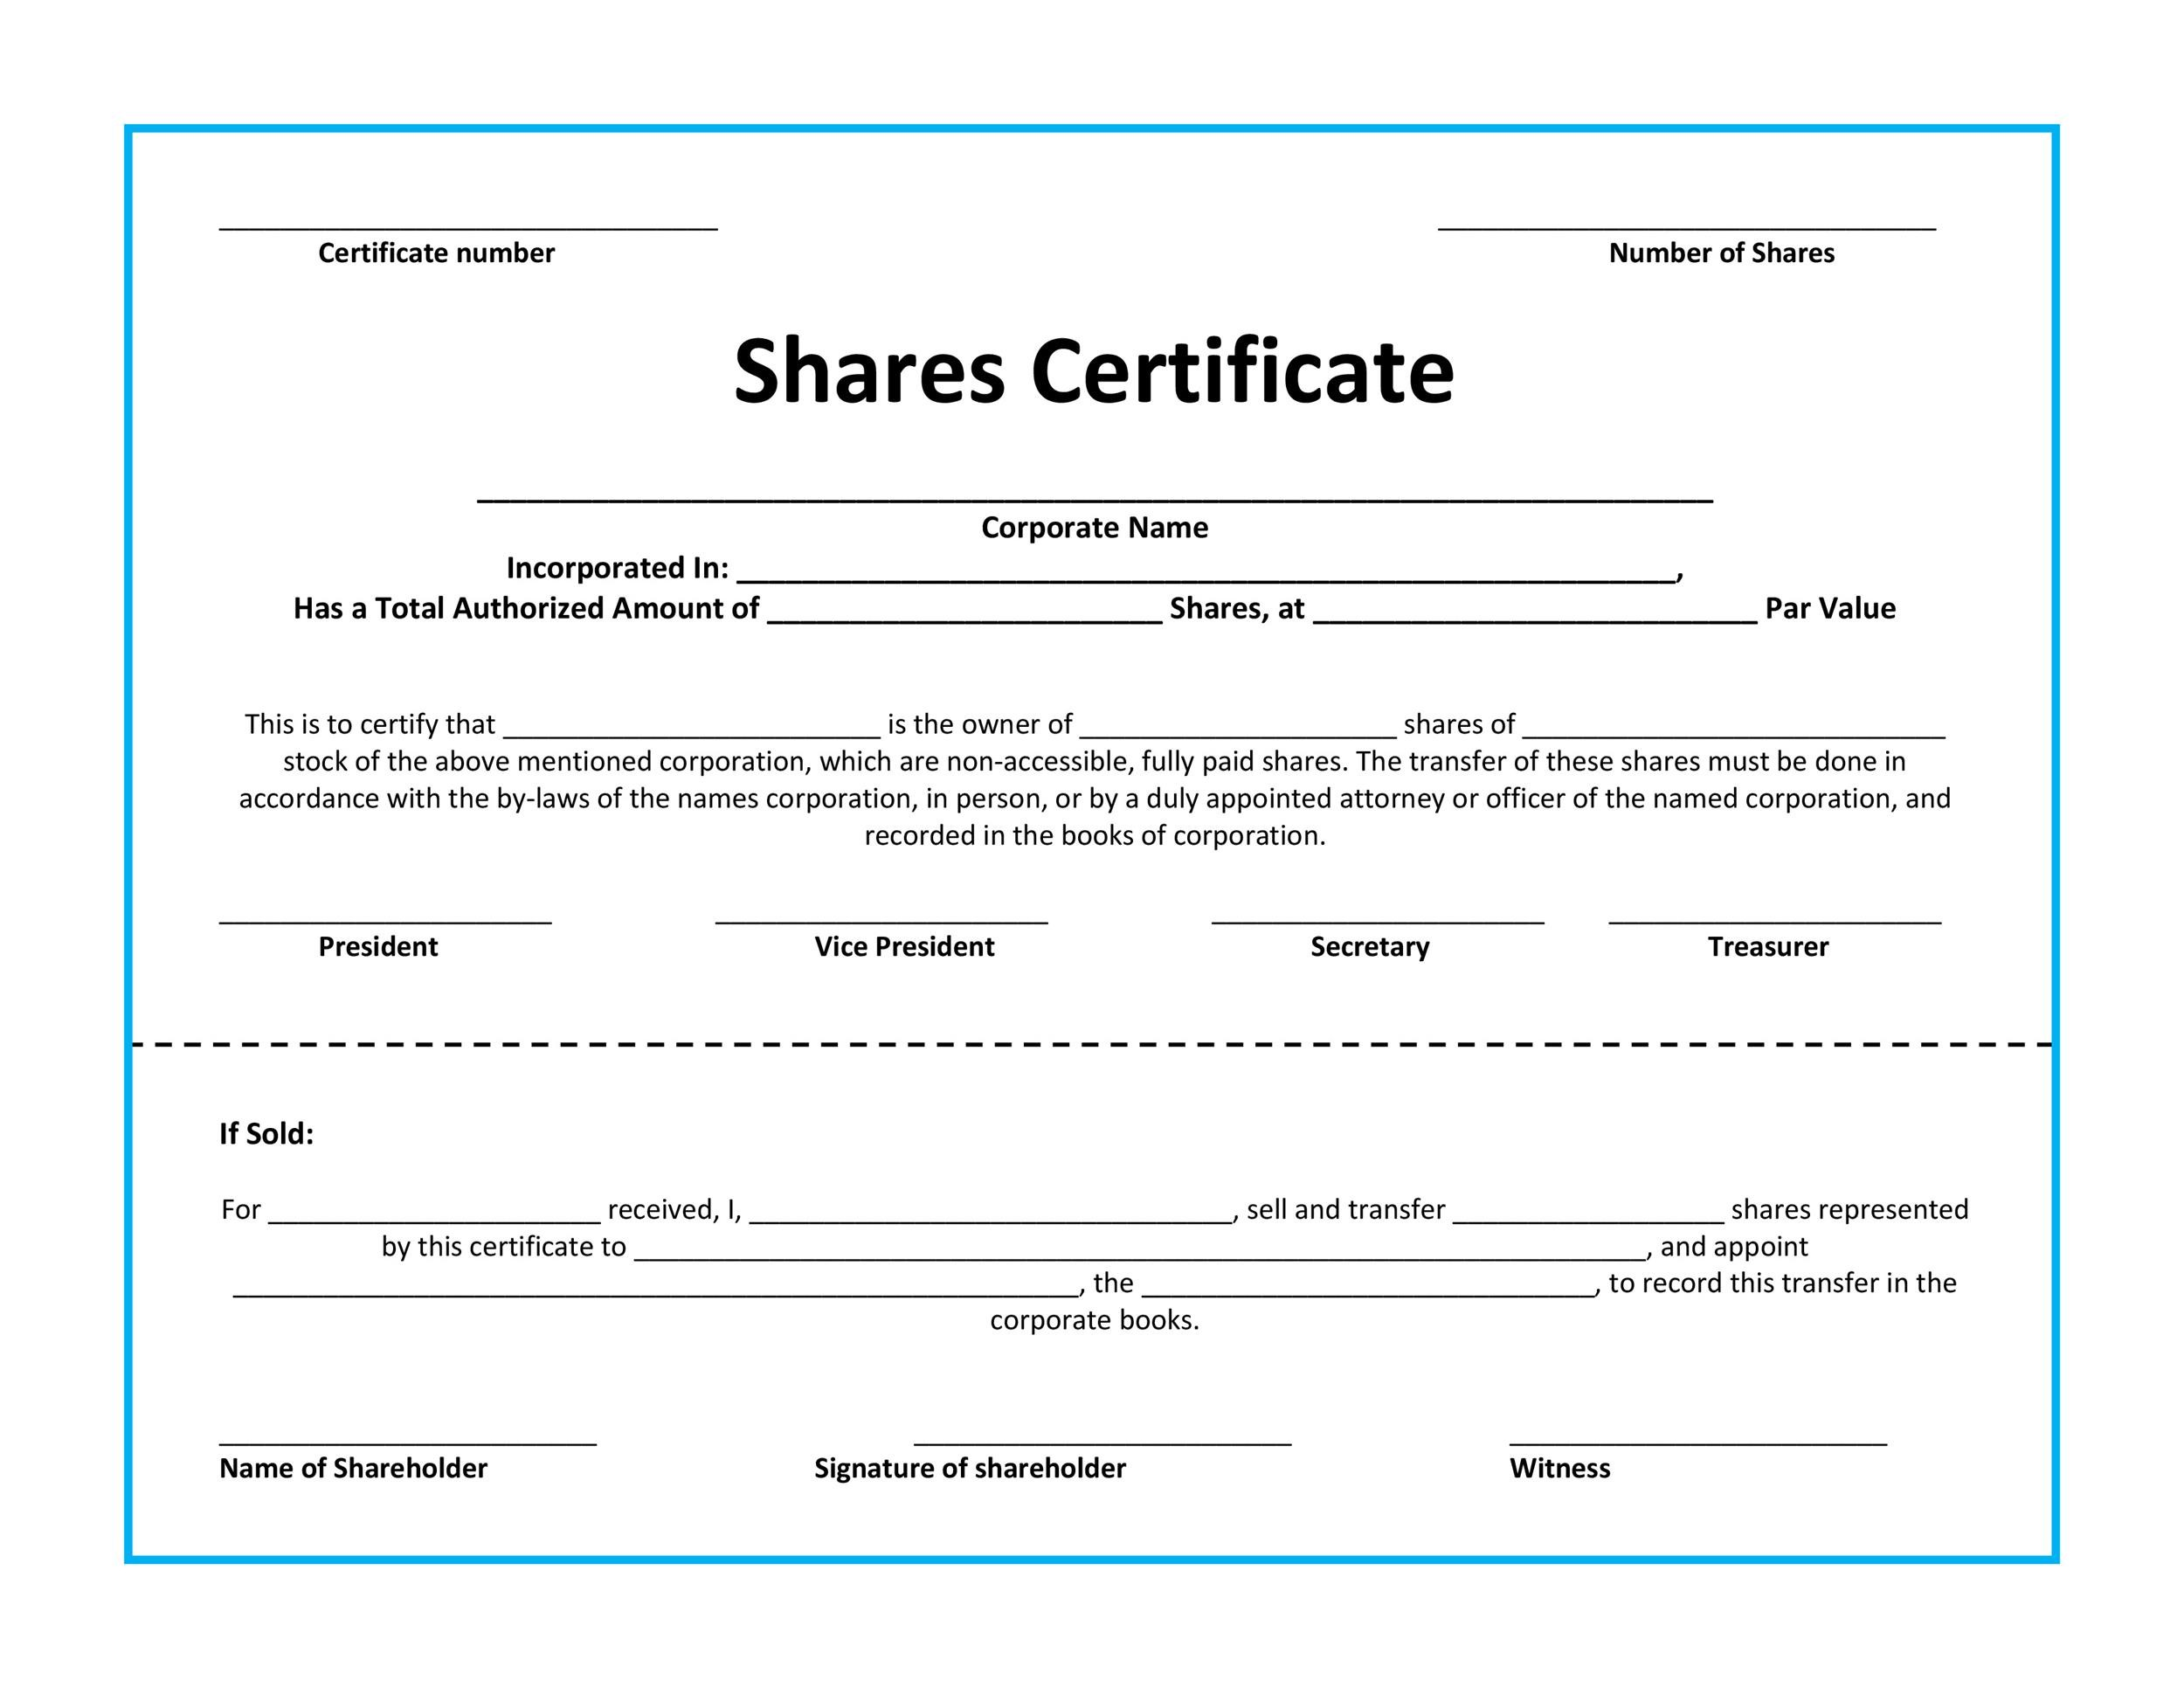 Shareholder certificate template passionative shareholder certificate template yelopaper